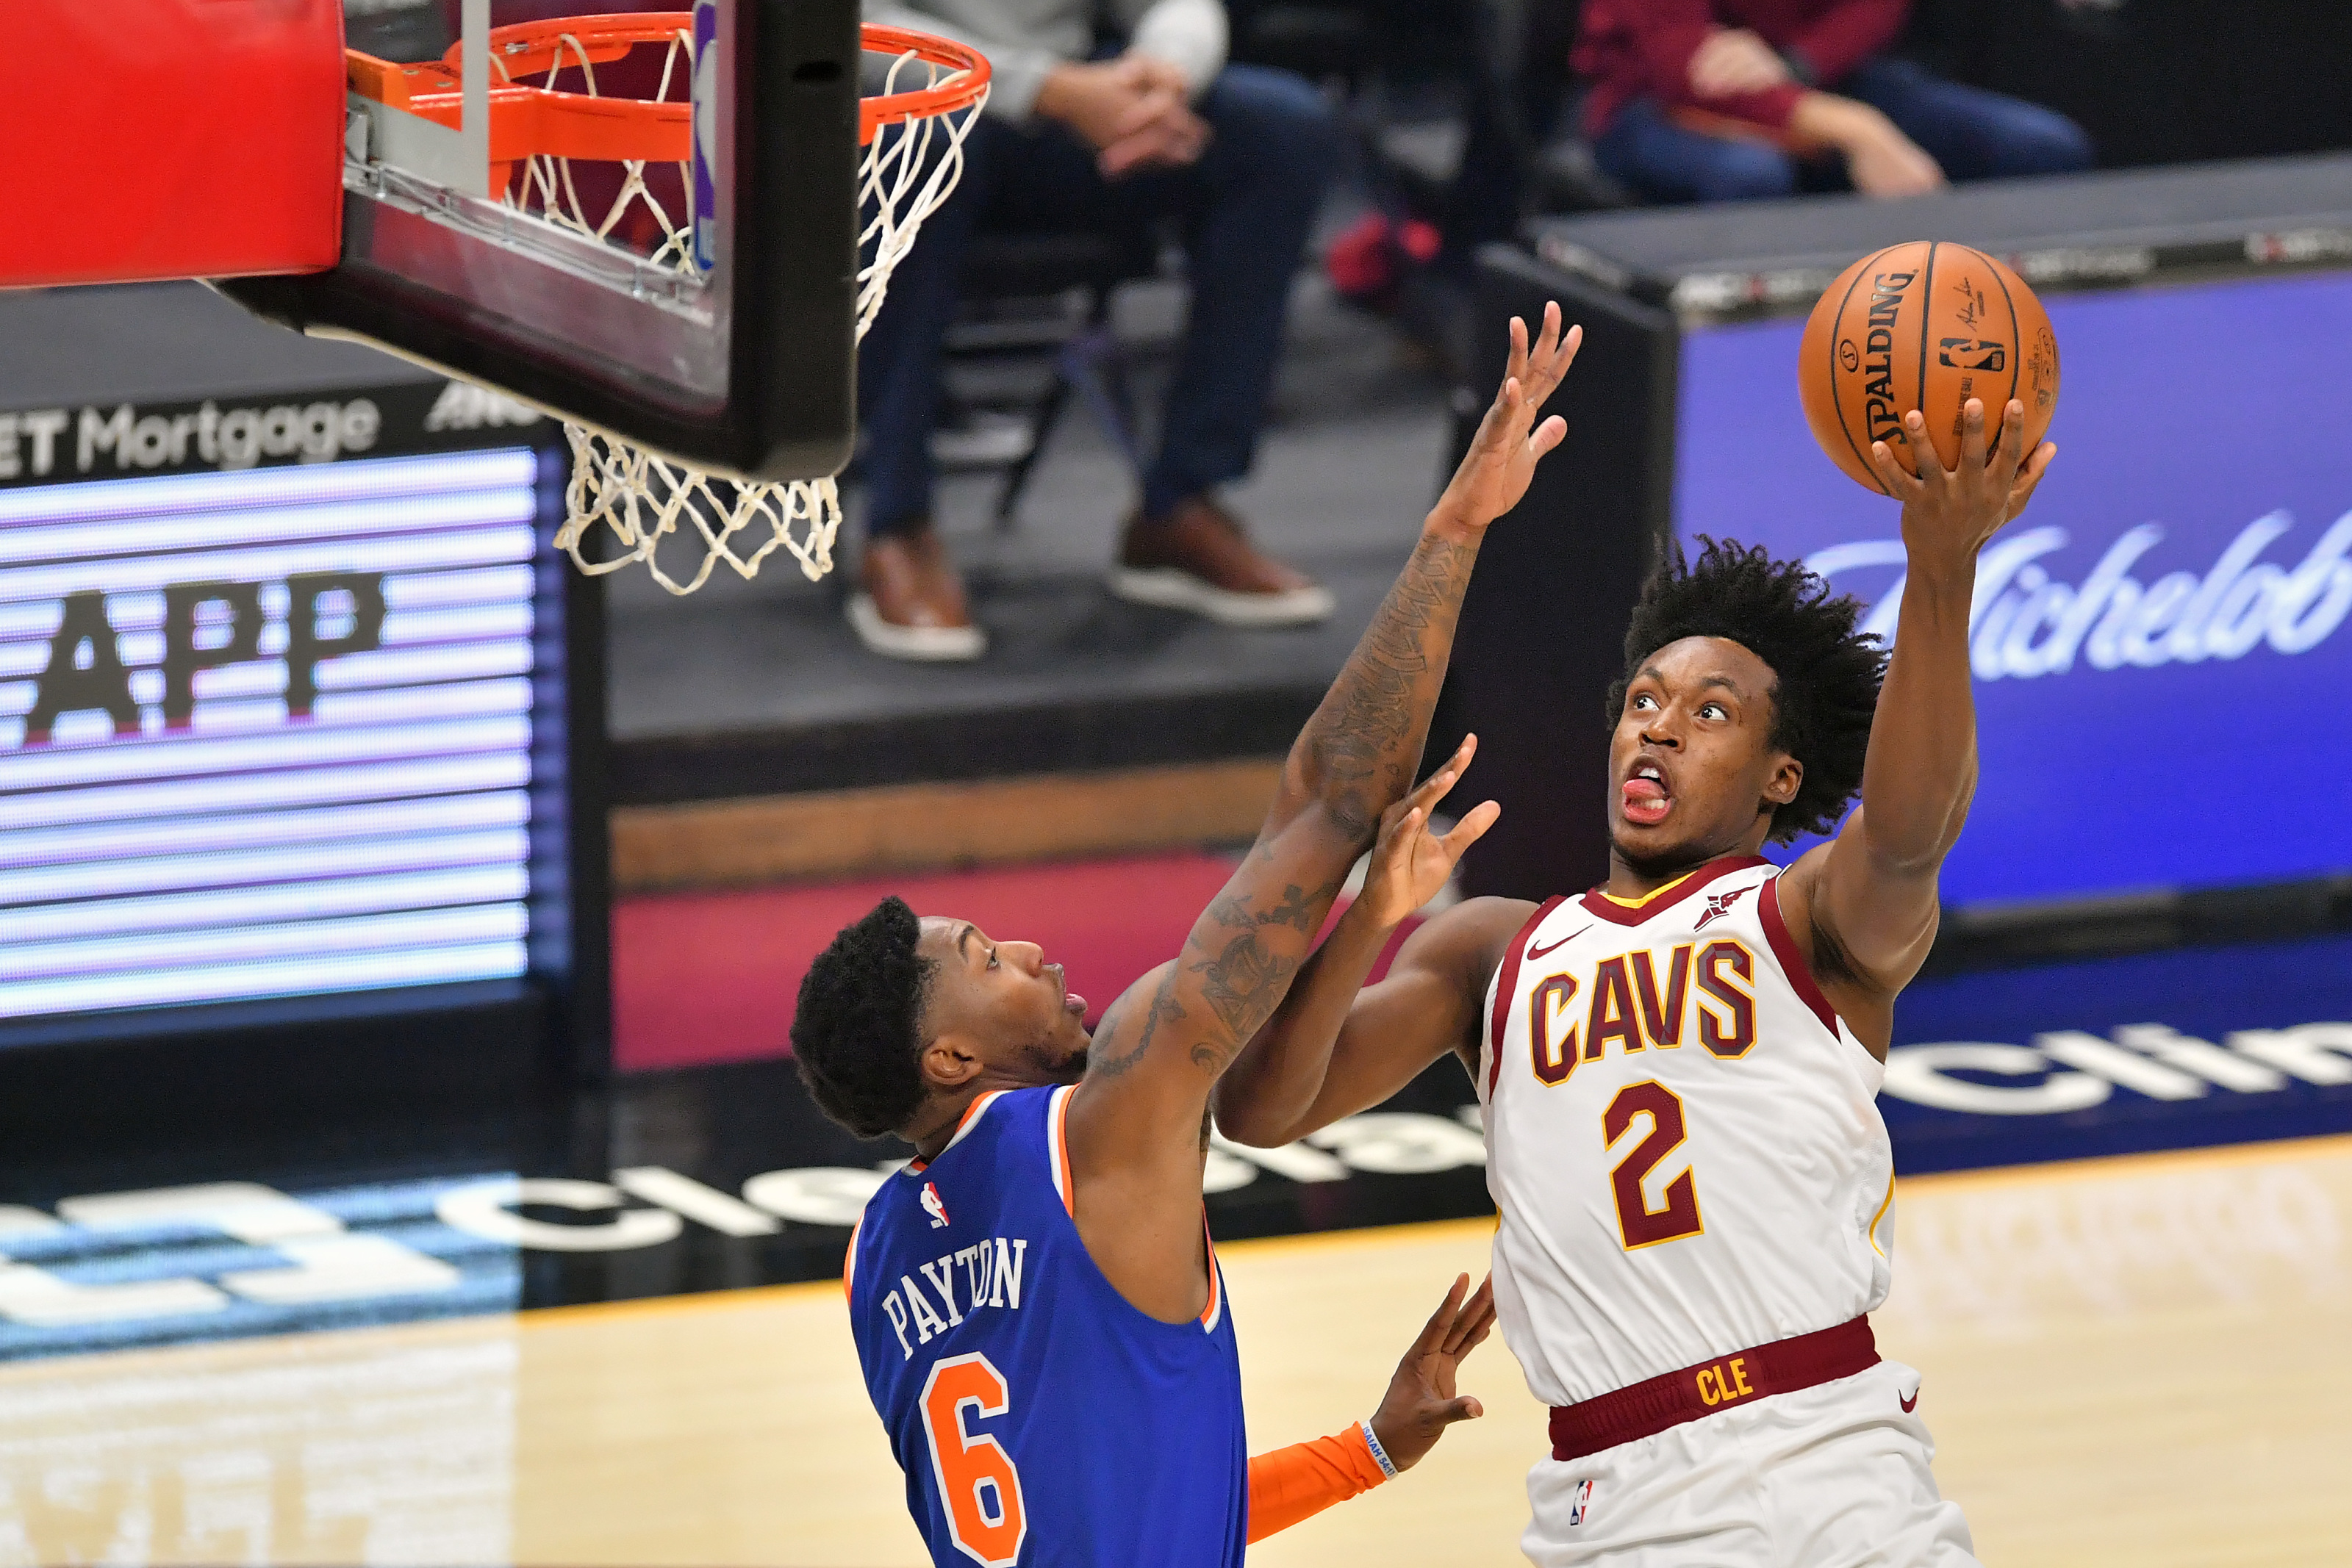 Cavs: Collin Sexton's hero-ball & 3 more things learned from Knicks loss